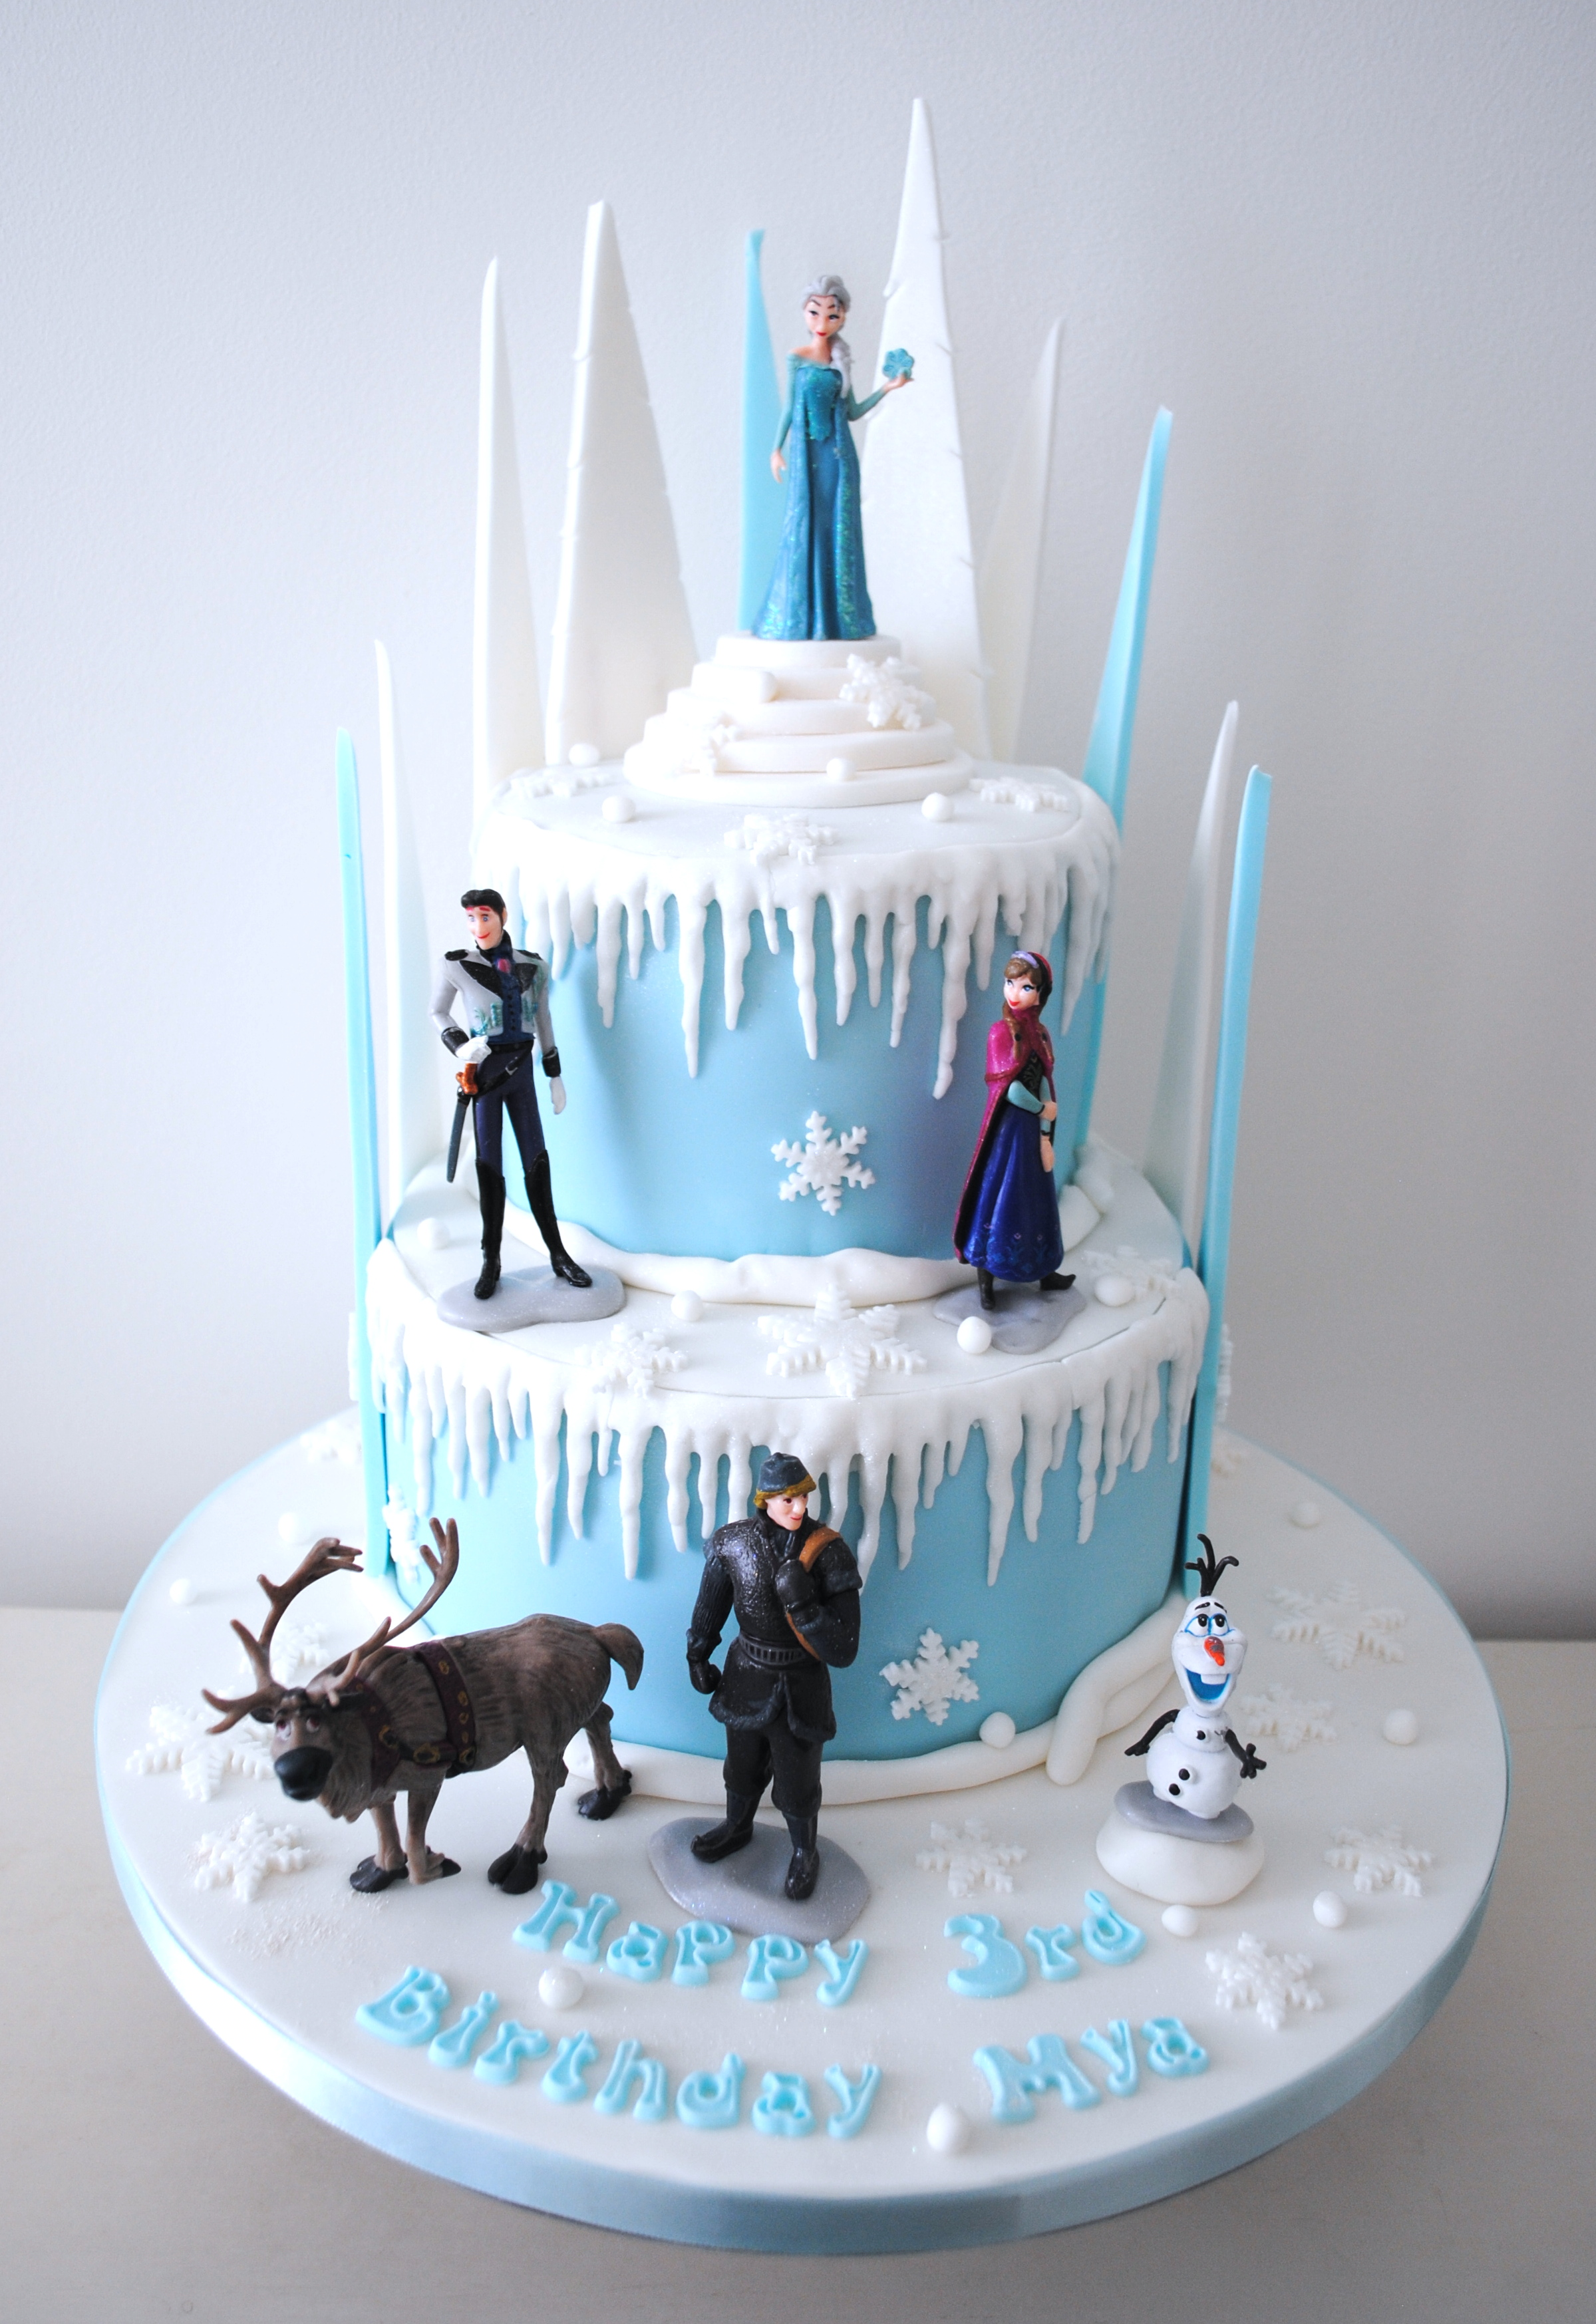 Surprising Miss Cupcakes Blog Archive 2 Tiered Disney Frozen Cake Personalised Birthday Cards Paralily Jamesorg